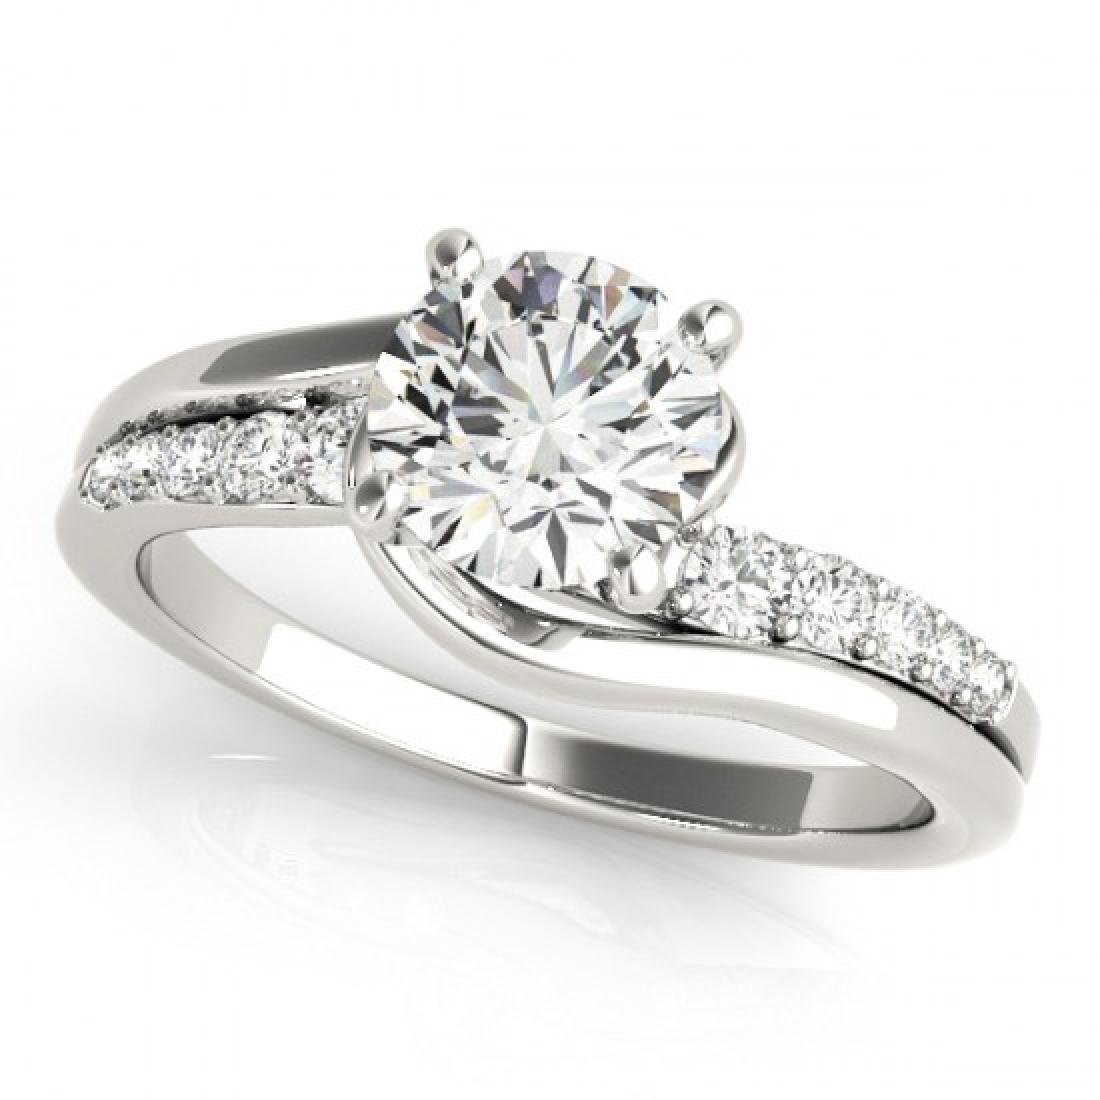 1.06 CTW Certified VS/SI Diamond Bypass Solitaire Ring